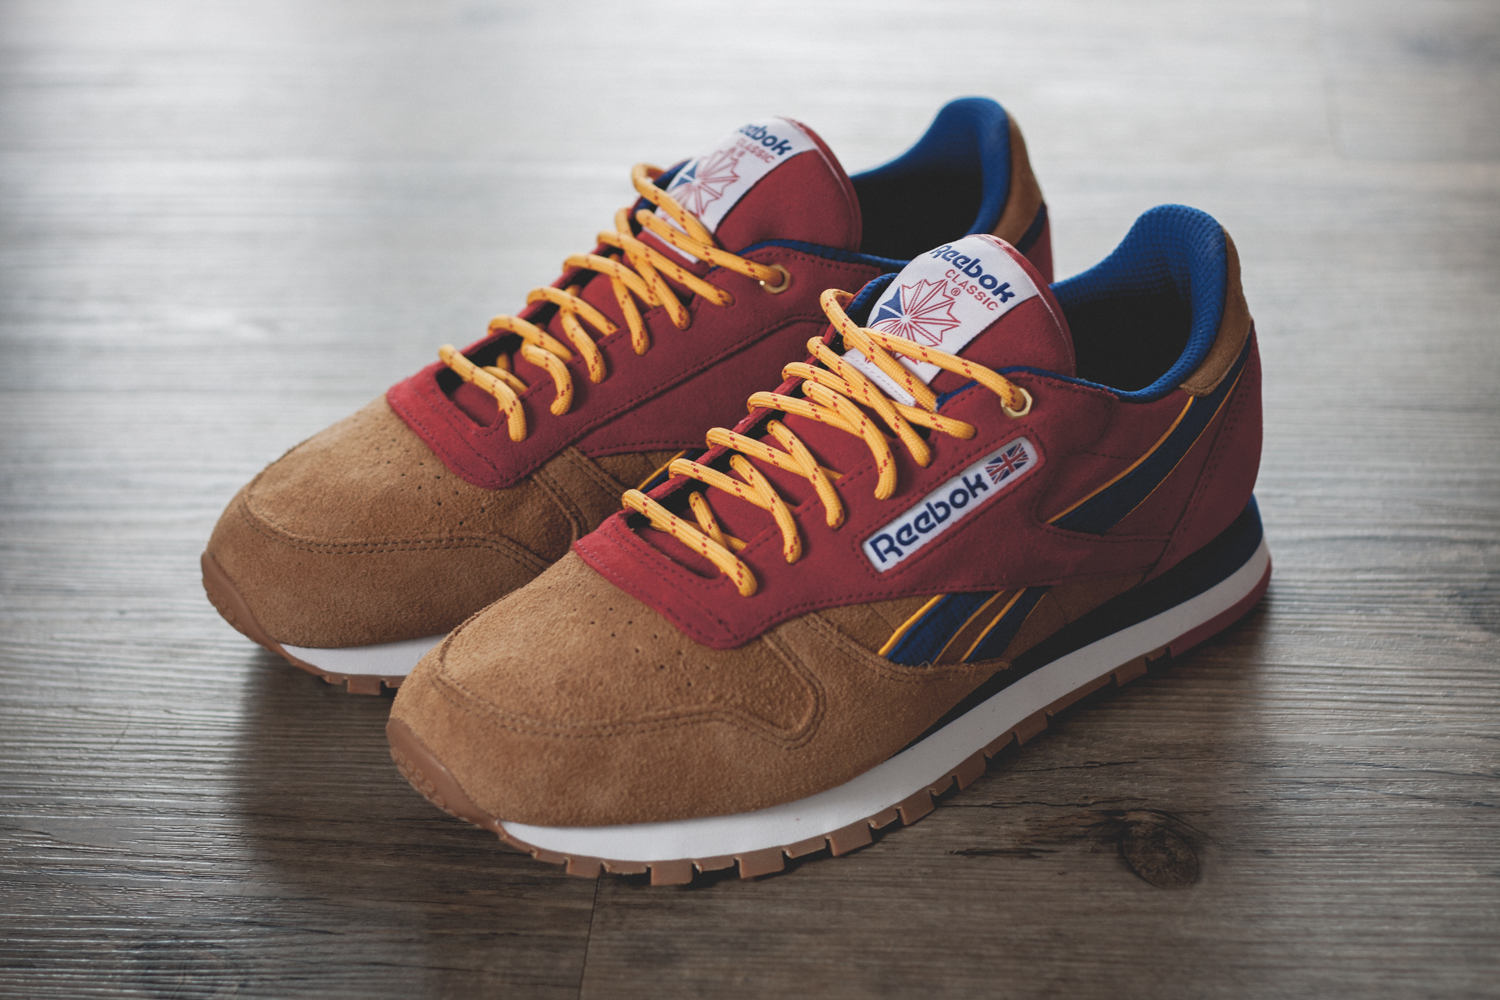 SNIPES x Reebok Classic Leather Review Camp Out 1